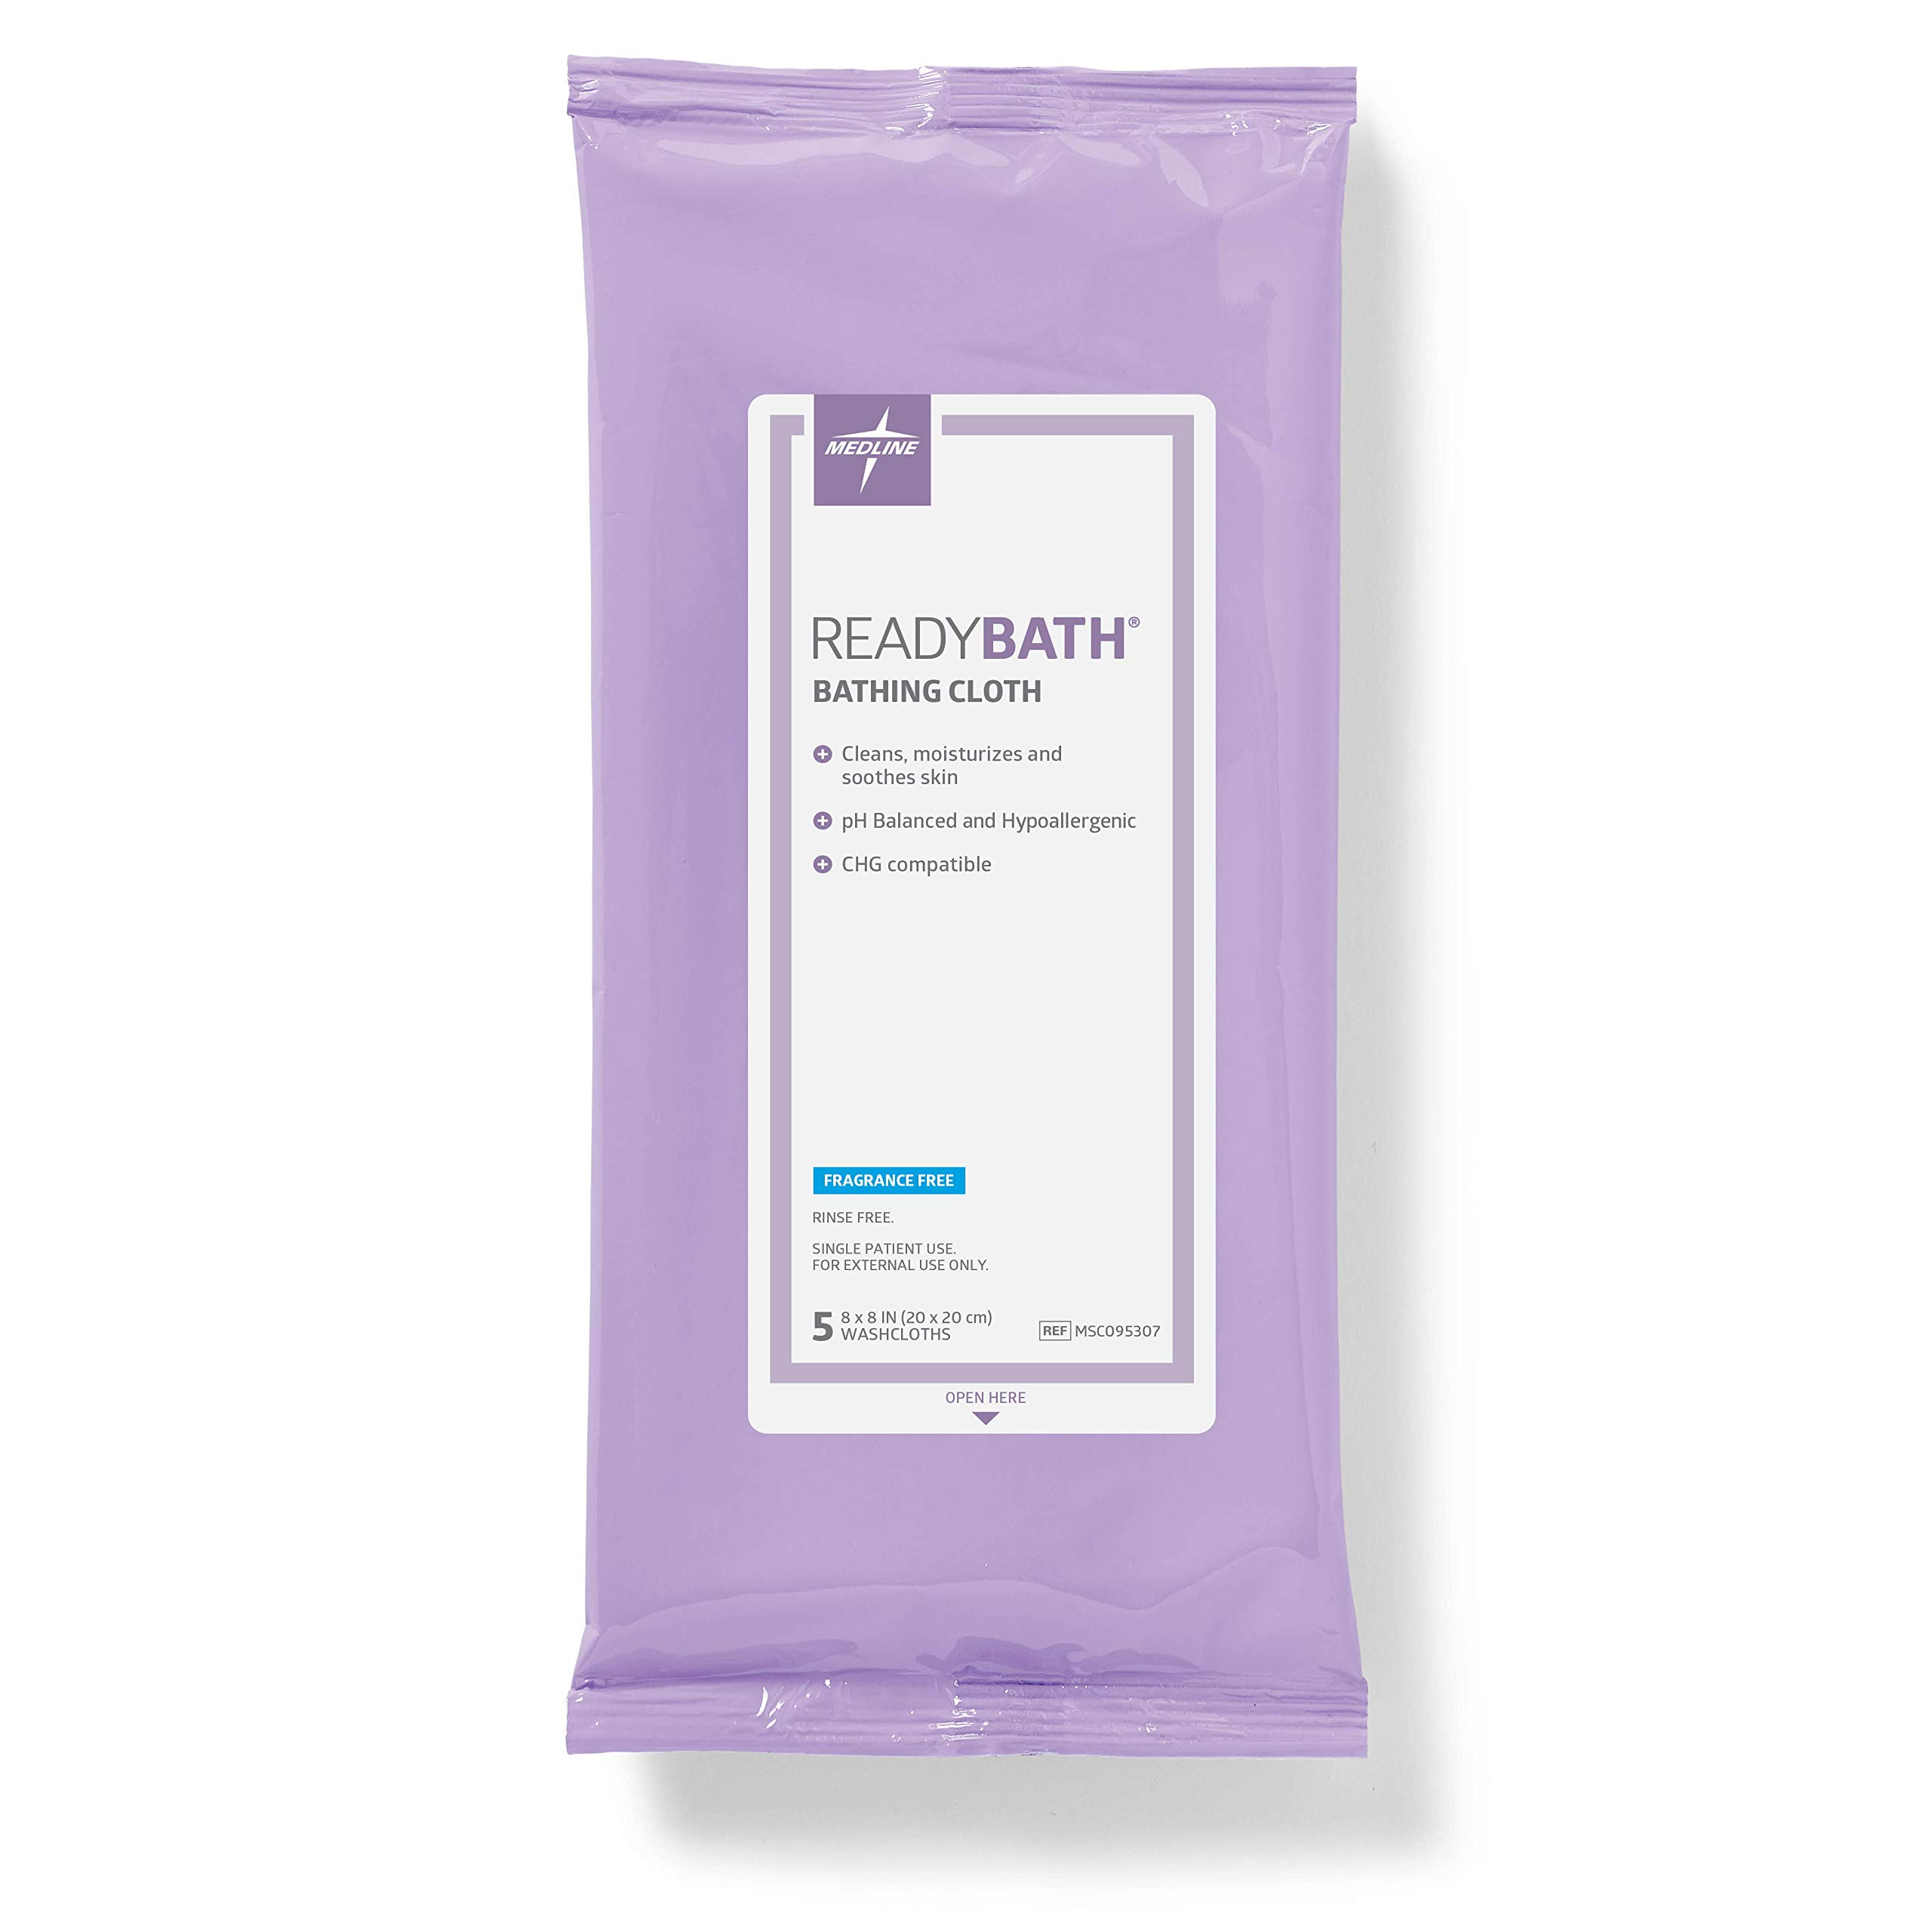 Medline ReadyBath Unscented Body Cleansing Cloths, Standard Weight Wipes (5 Count Pack, 30 Packs)